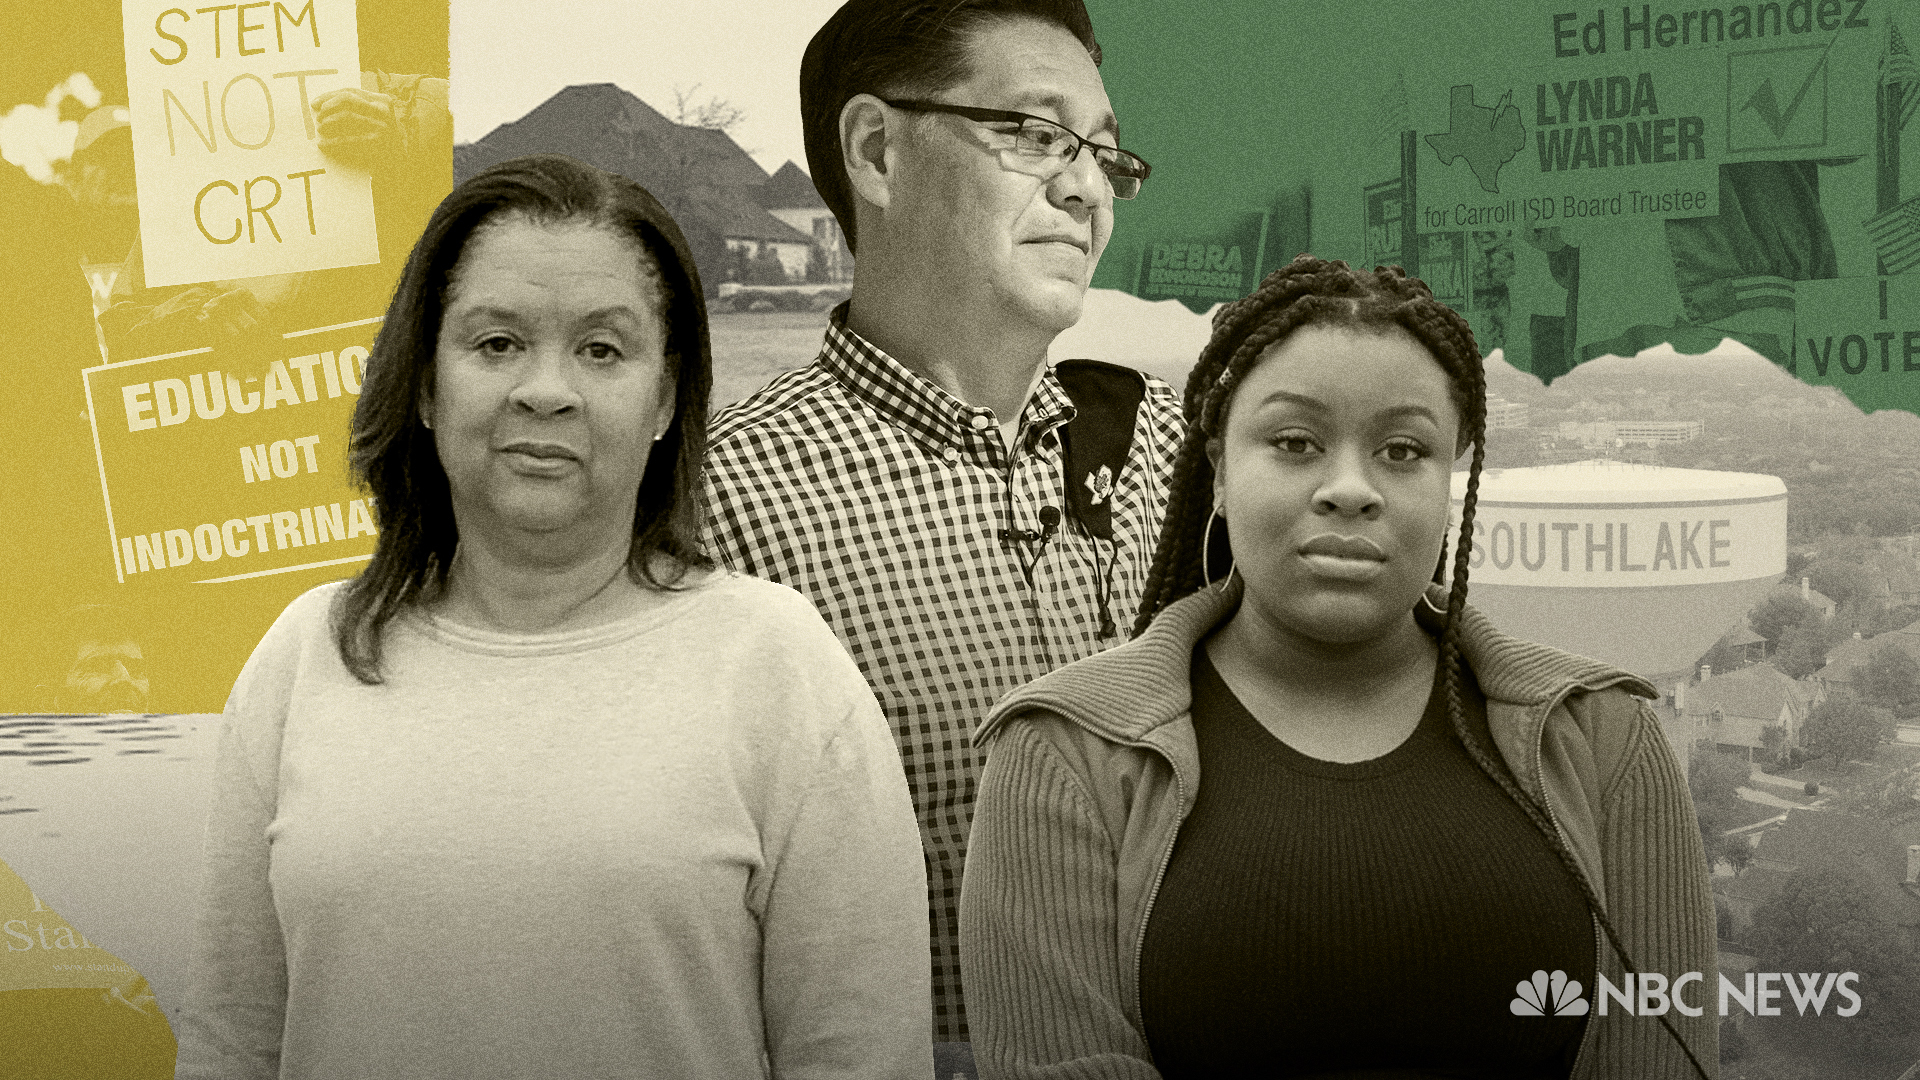 Southlake: A viral video, a diversity plan, and an election that changed an affluent Texas town